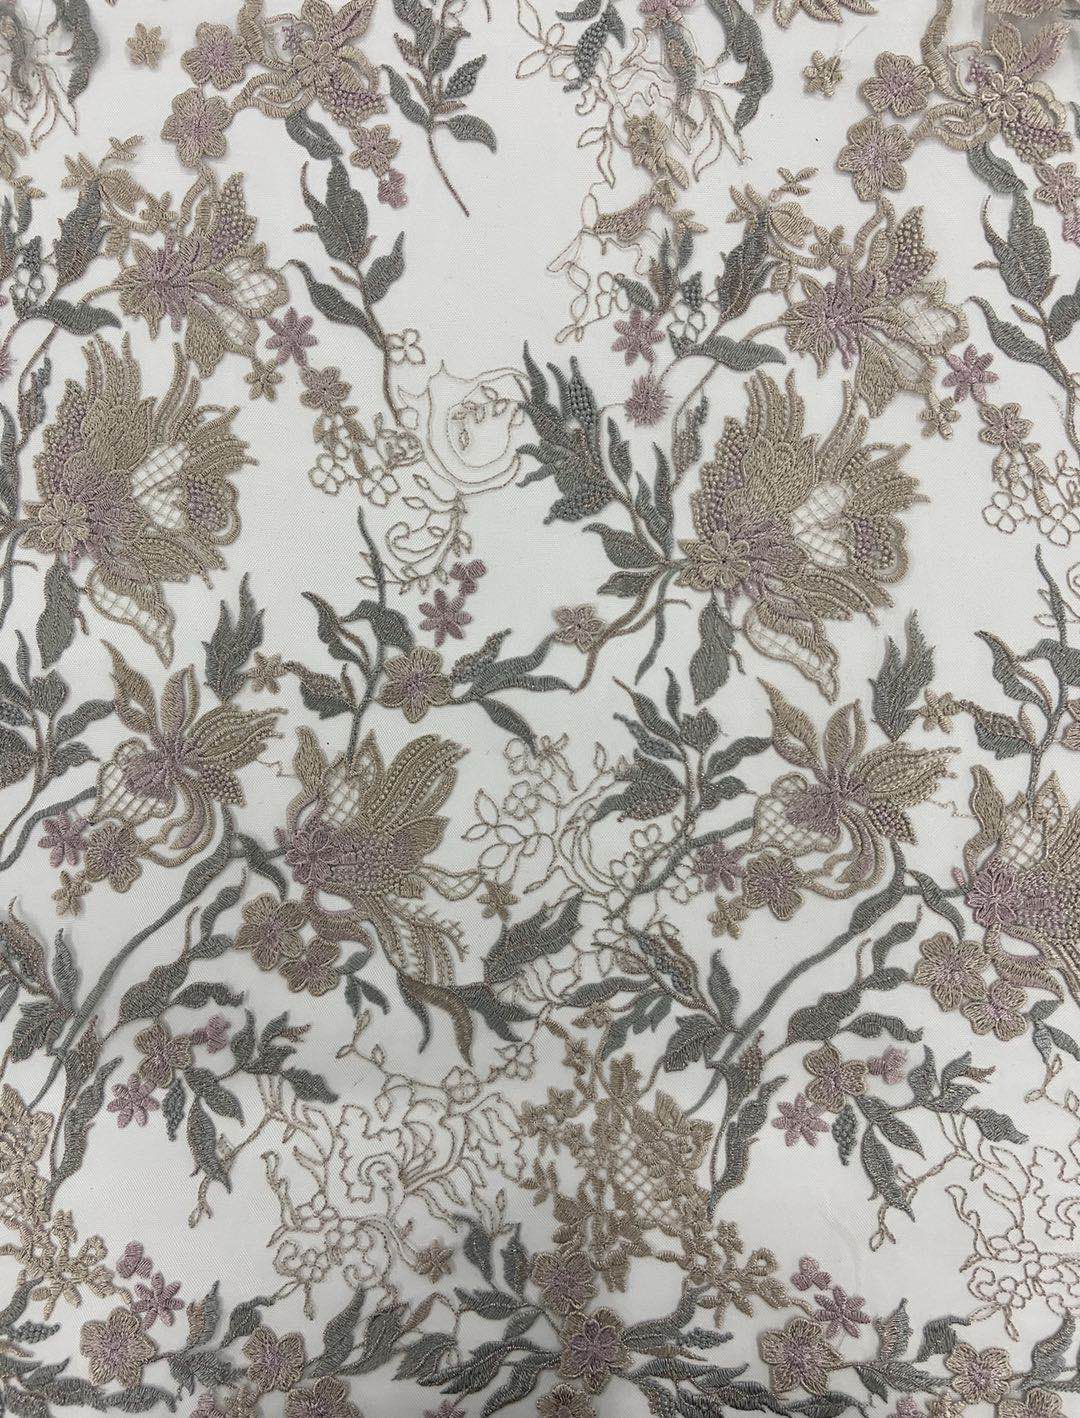 Embroidery Fabric 4